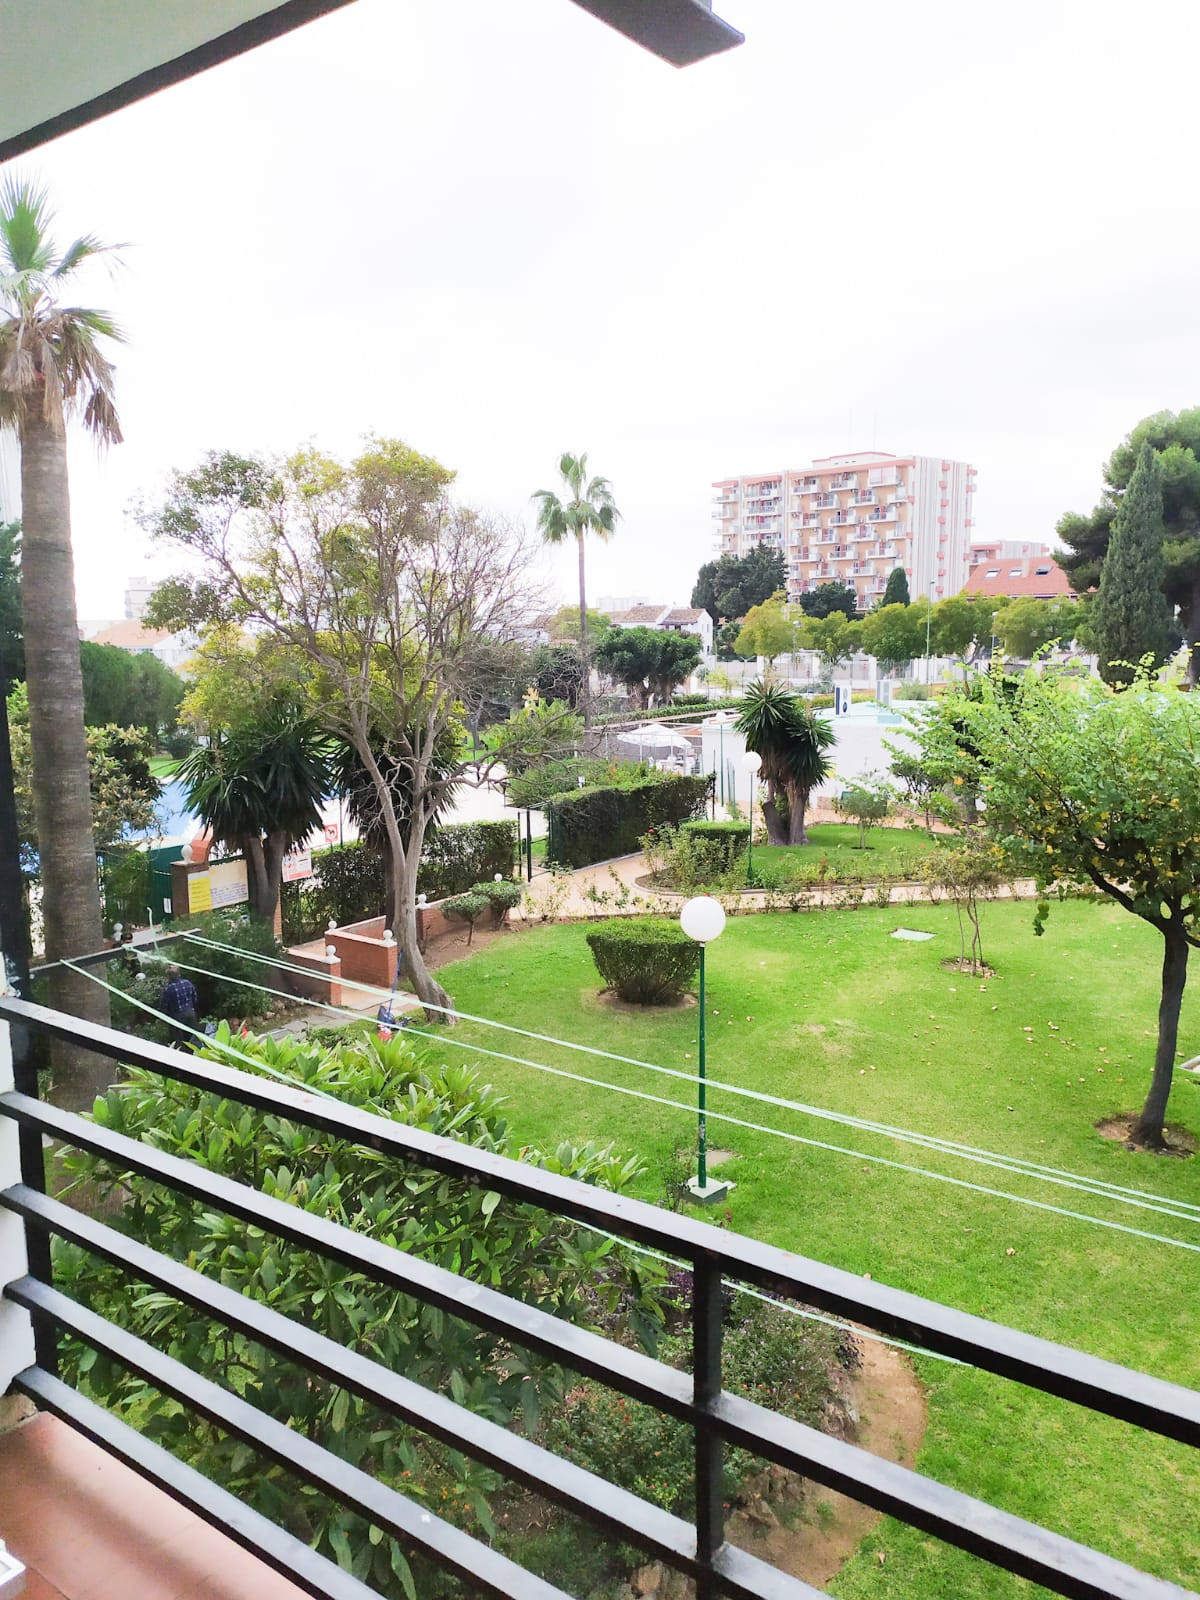 Fantastic 2 bedroom - 1 bathroom apartment for sale, situated in a popular complex walking distance , Spain